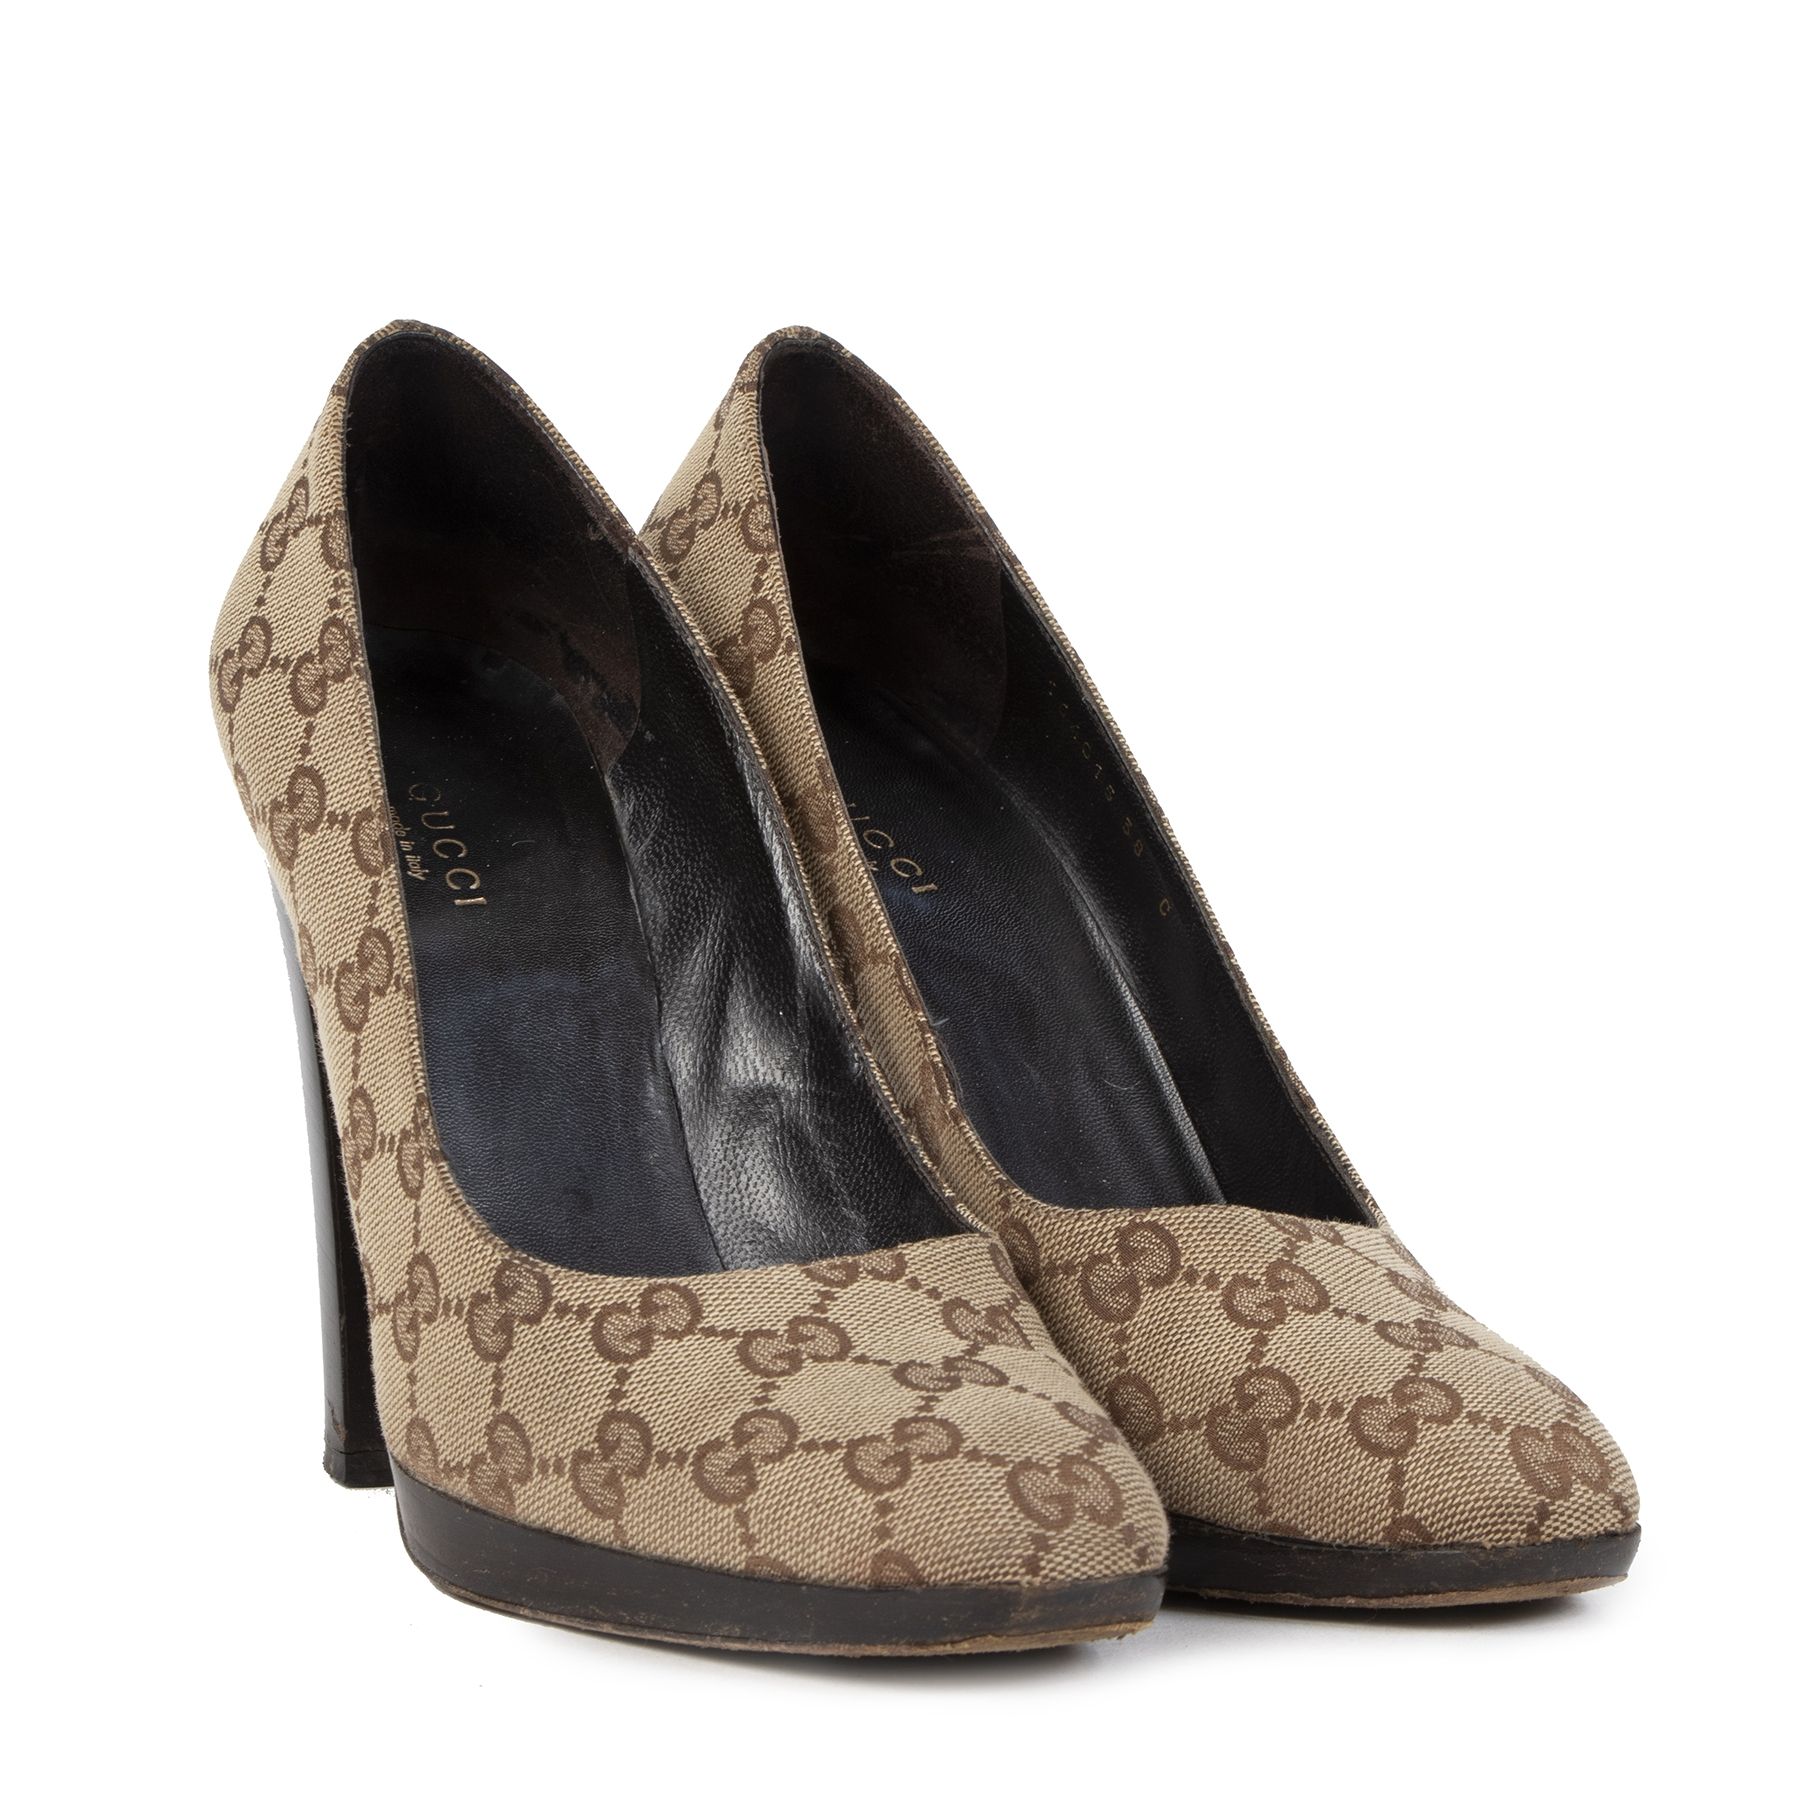 Buy authentic secondhand Gucci shoes at the right price at LabelLOV vintage webshop. Safe and secure online shopping.